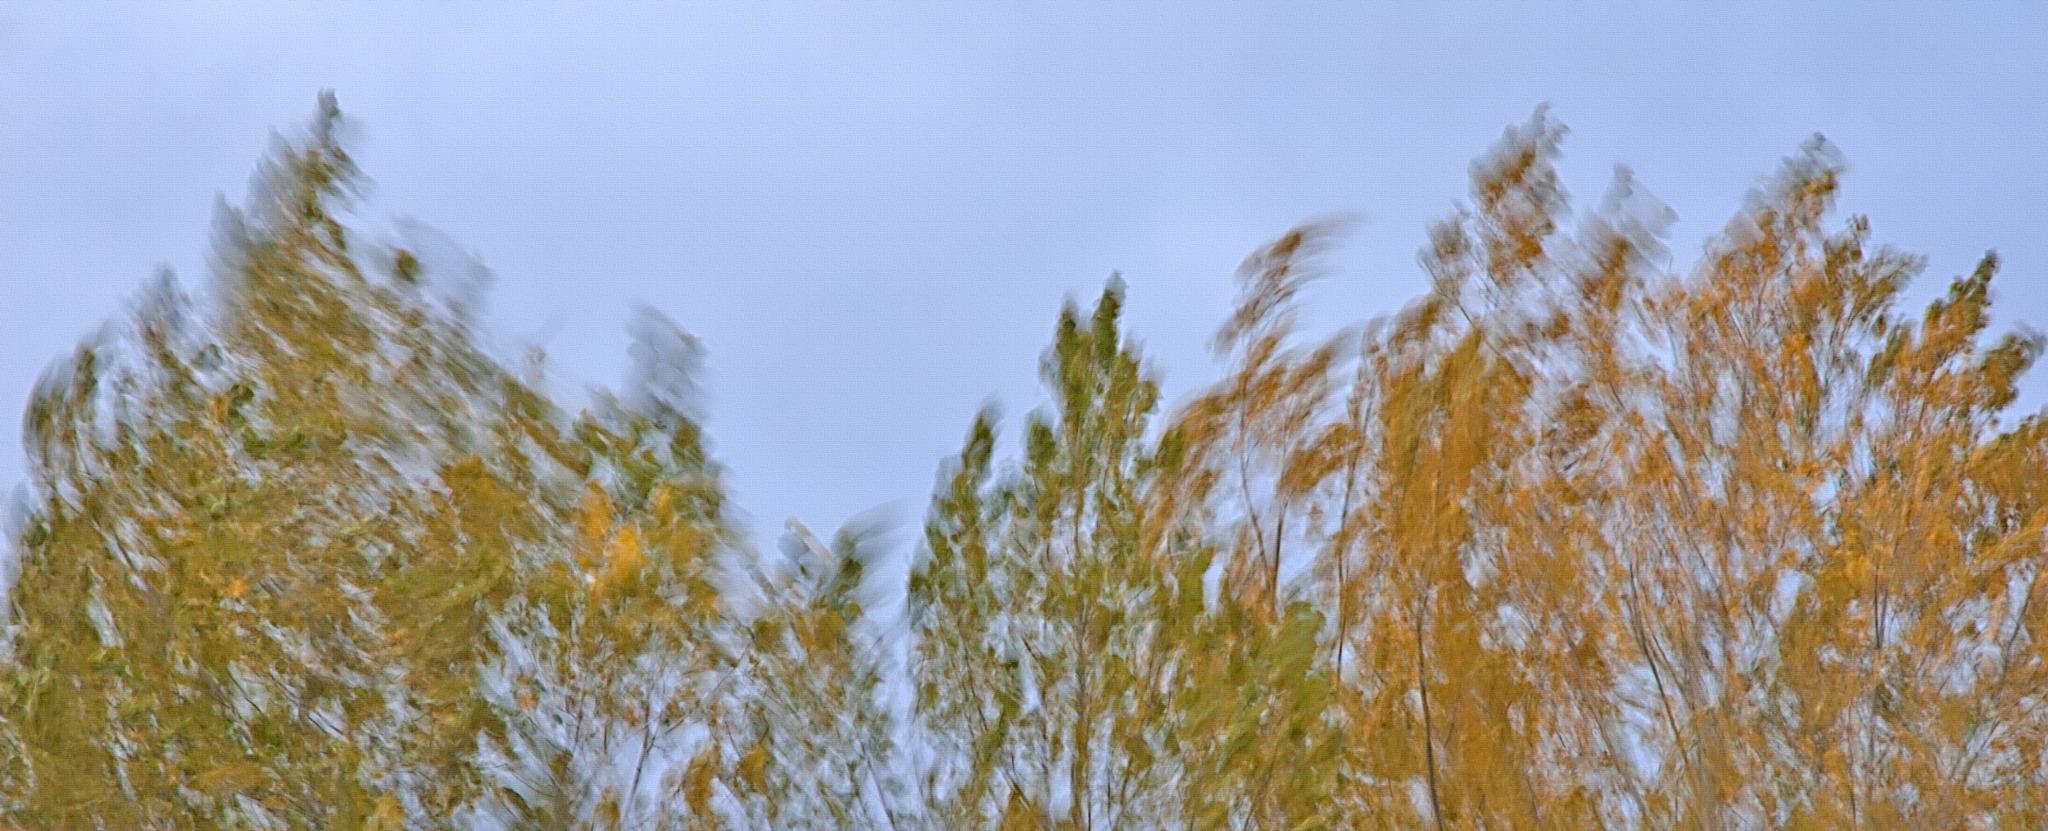 Wind in the Trees by Steve Ohlsen